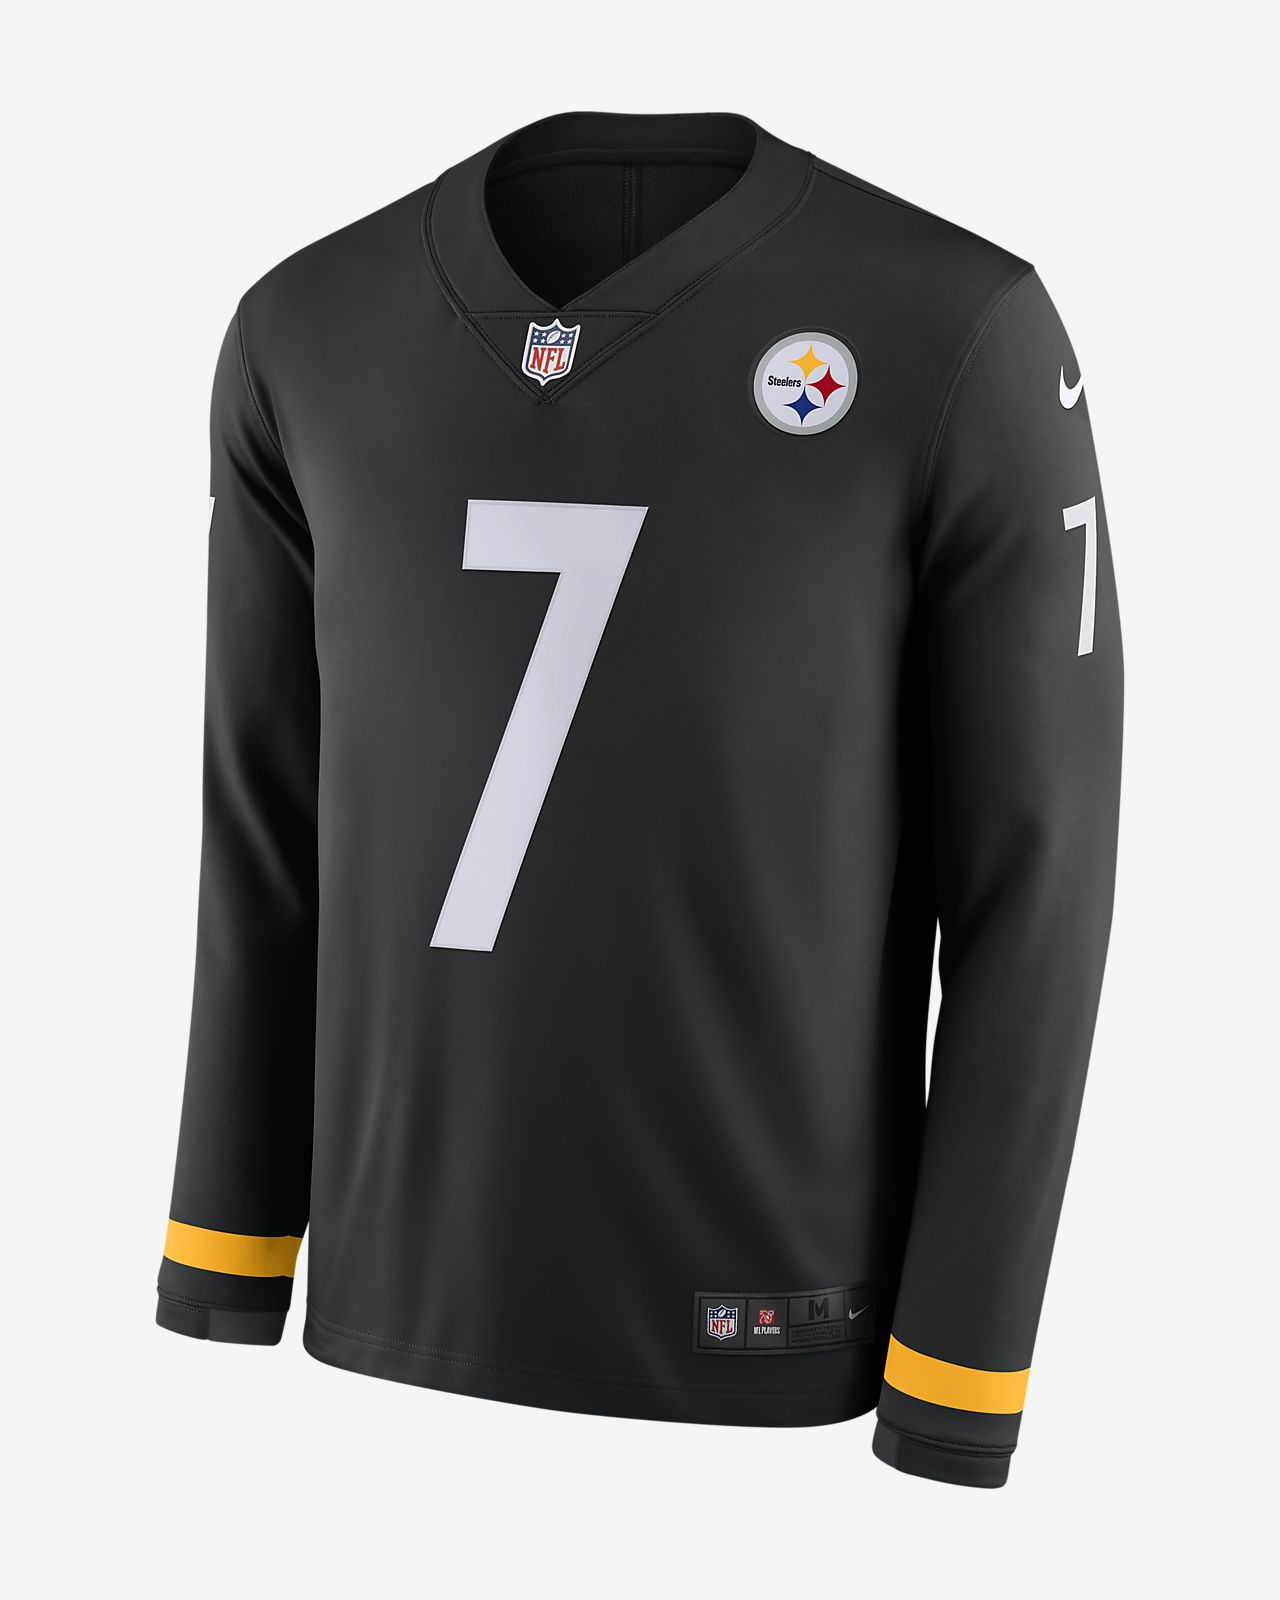 19ba469cae0 NFL Pittsburgh Steelers Jersey (Ben Roethlisberger) Men s Long ...